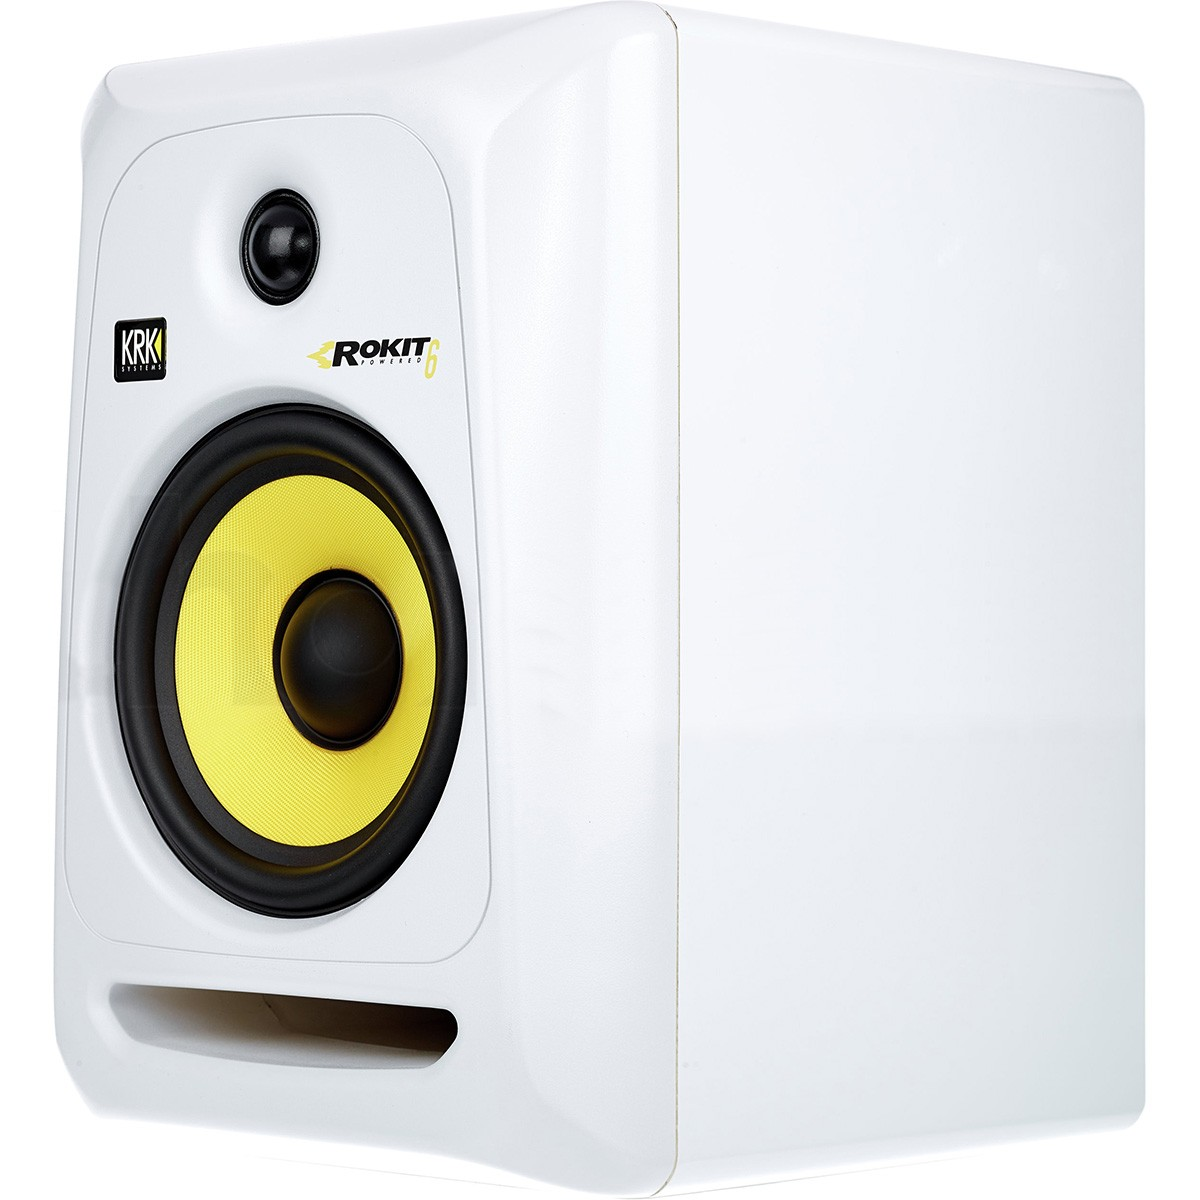 Krk RP6 G3 Rokit Powered Monitor de Audio Referencia para Estudio, Branco, 110v, Par